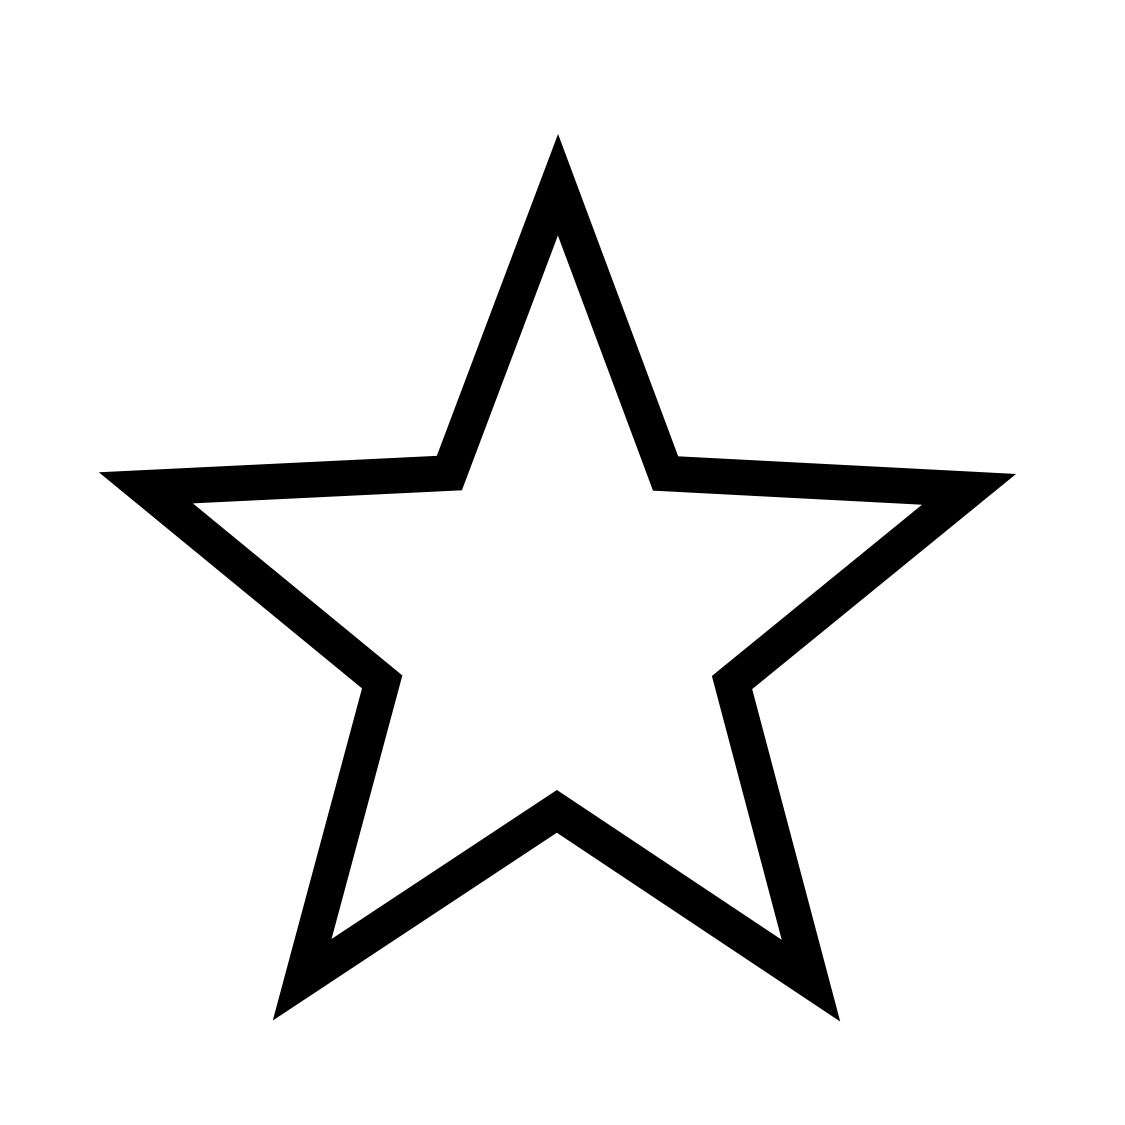 Star Images Png Black And White